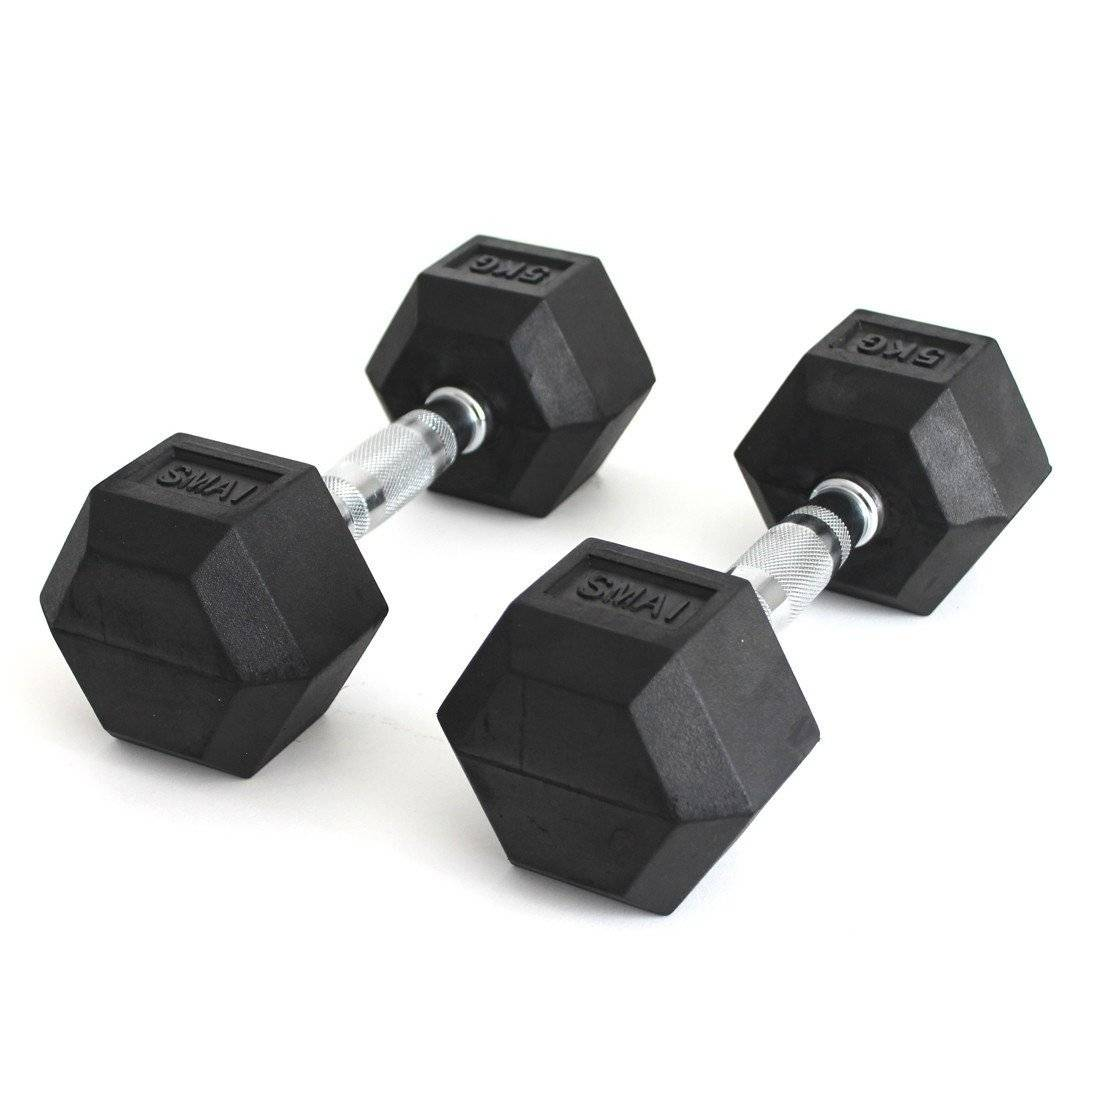 SMAI Rubber Hex Dumbbell Rubber sold as a pair